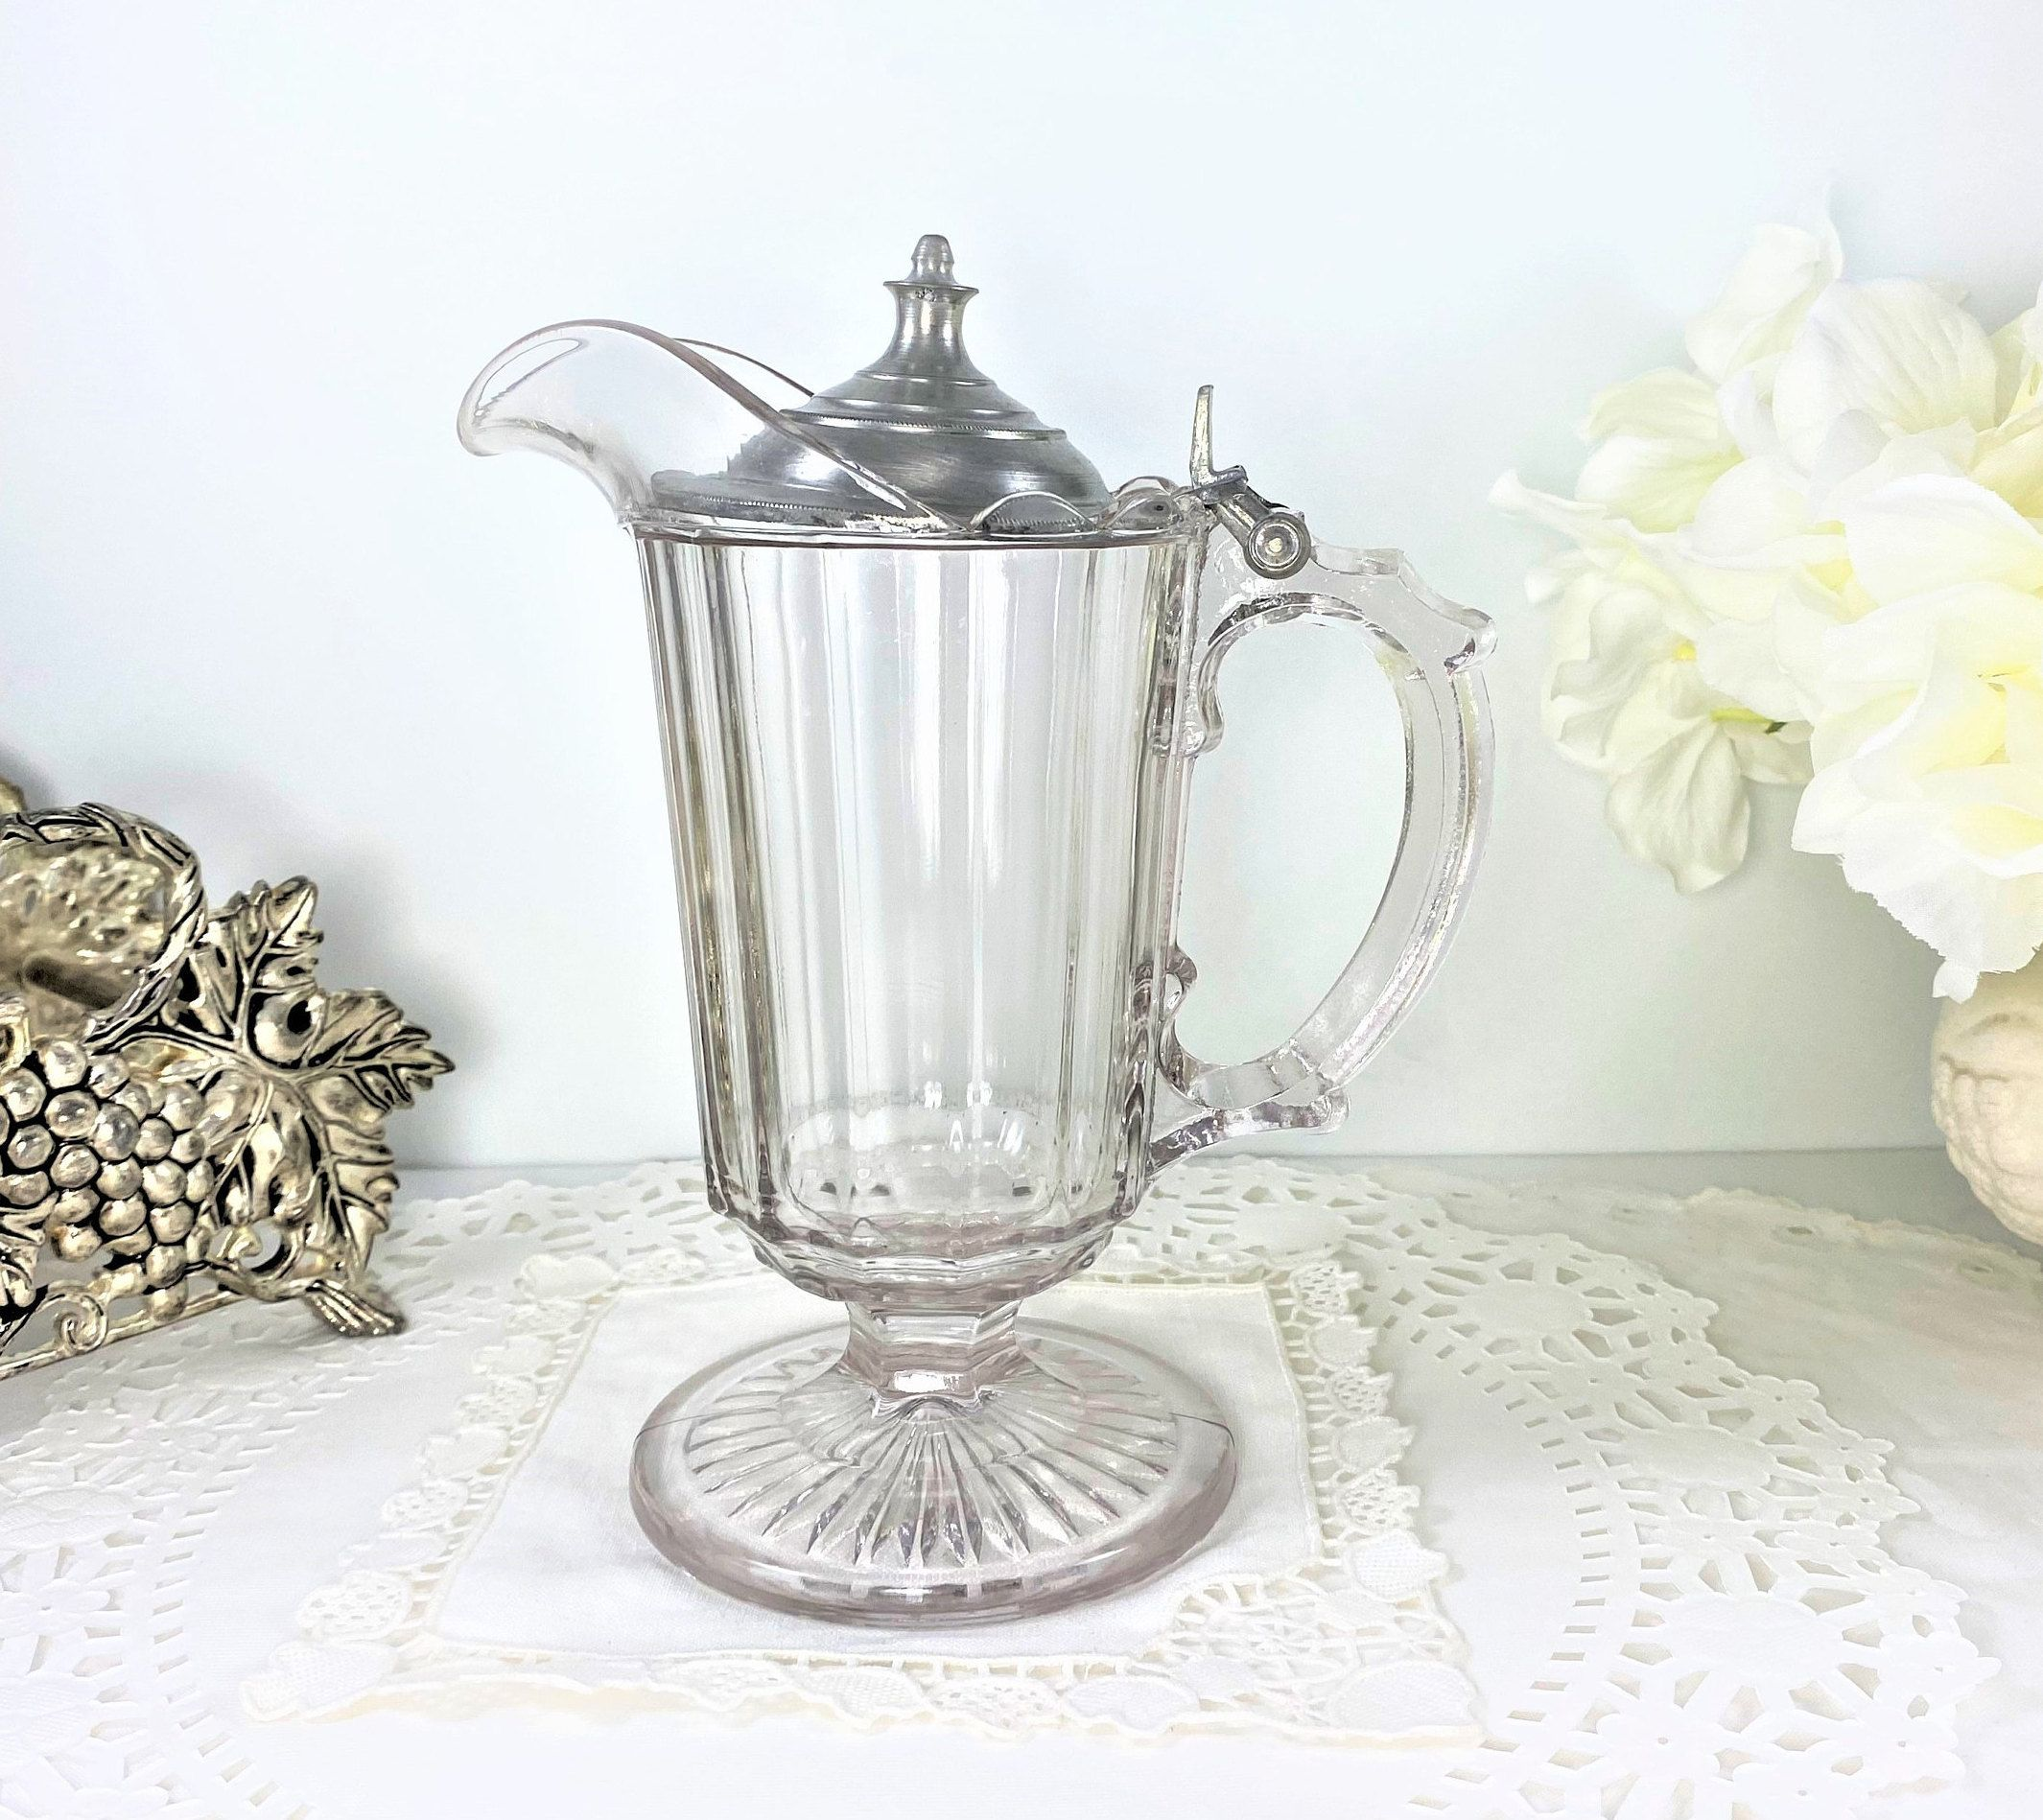 """This is a beautiful heavy pressed glass footed pitcher with an ornate handle and hinged lid. It measures 7 1/4"""" high to tip of lid, and approximately 6"""" wide from spout to handle. Its weight alone is 1 lb, 5.4 ounces. Holds 8 fluid oz. comfortably! in very good vintage condition!  NO nicks, chips, cracks, repairs. A wonderful pitcher that can be used for cream, syrup, etc. There are no makers marks to be found. Please examine pictures carefully as they are part of the description. Thanks for visiting Shoreline Vintage! To view our complete Etsy Shop, please go to: https://www.etsy.com/shop/ShorelineVintage"""